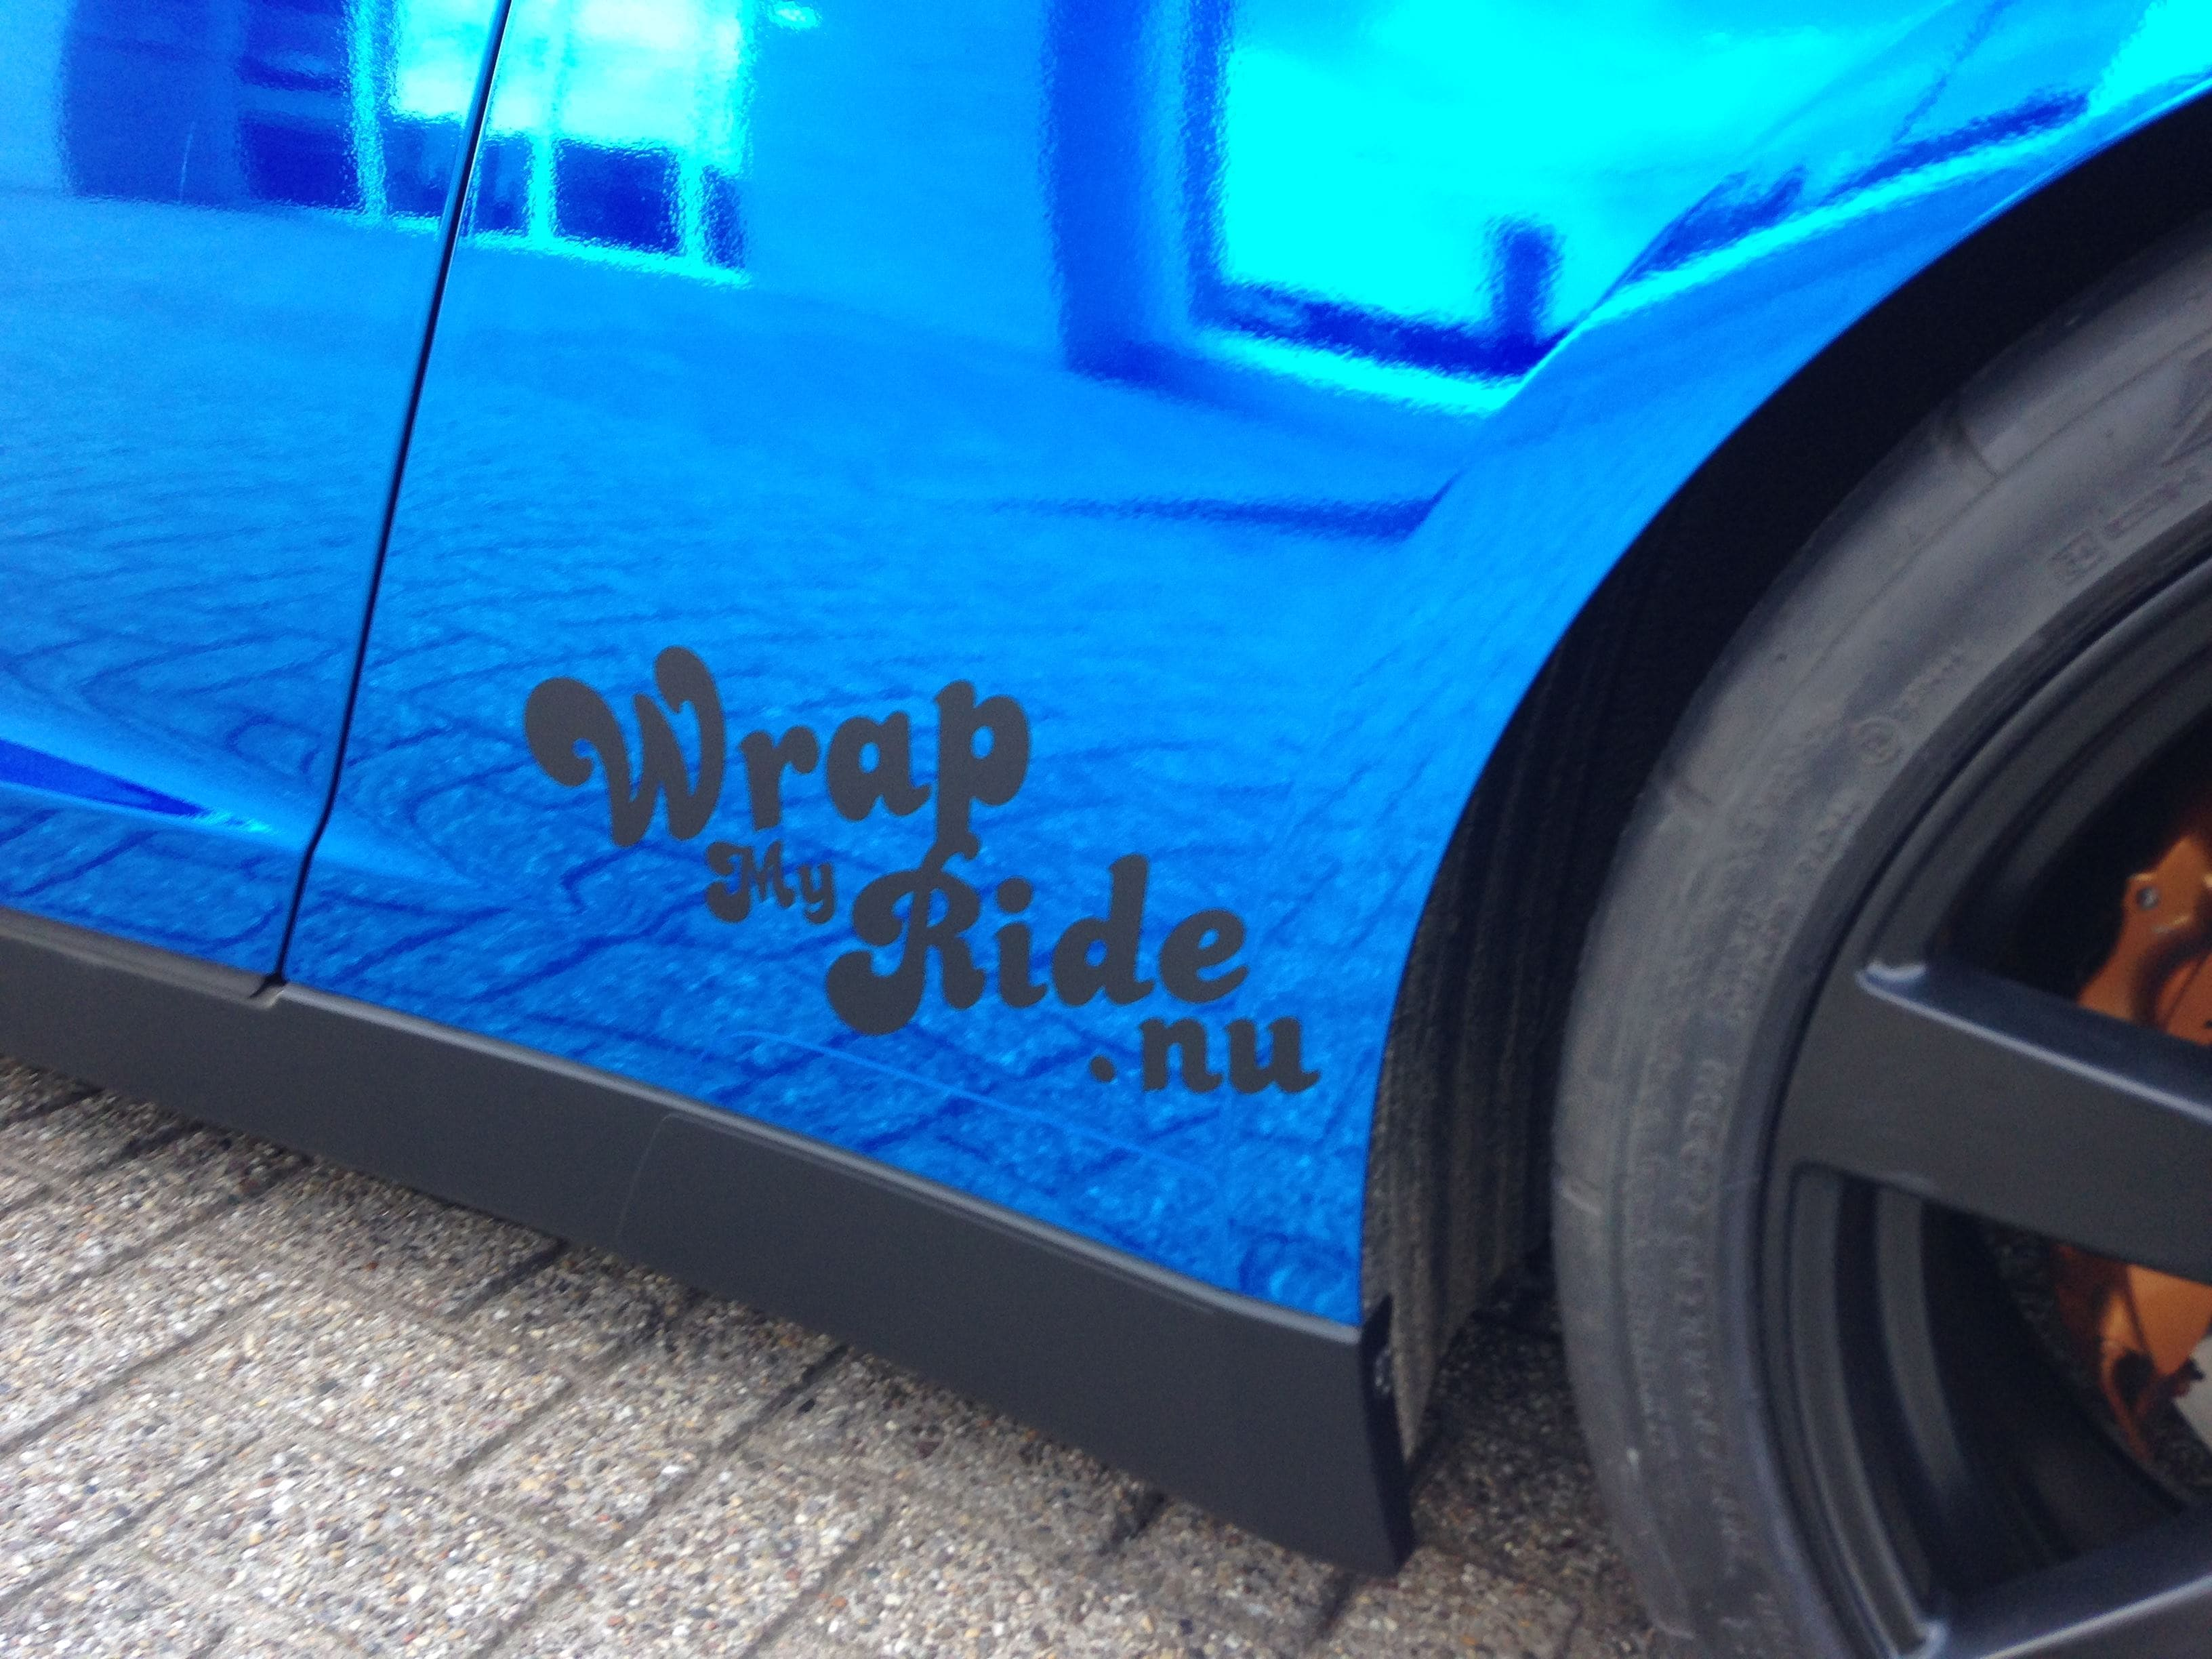 Nissan GT-R met Blue Chrome Wrap, Carwrapping door Wrapmyride.nu Foto-nr:6466, ©2020